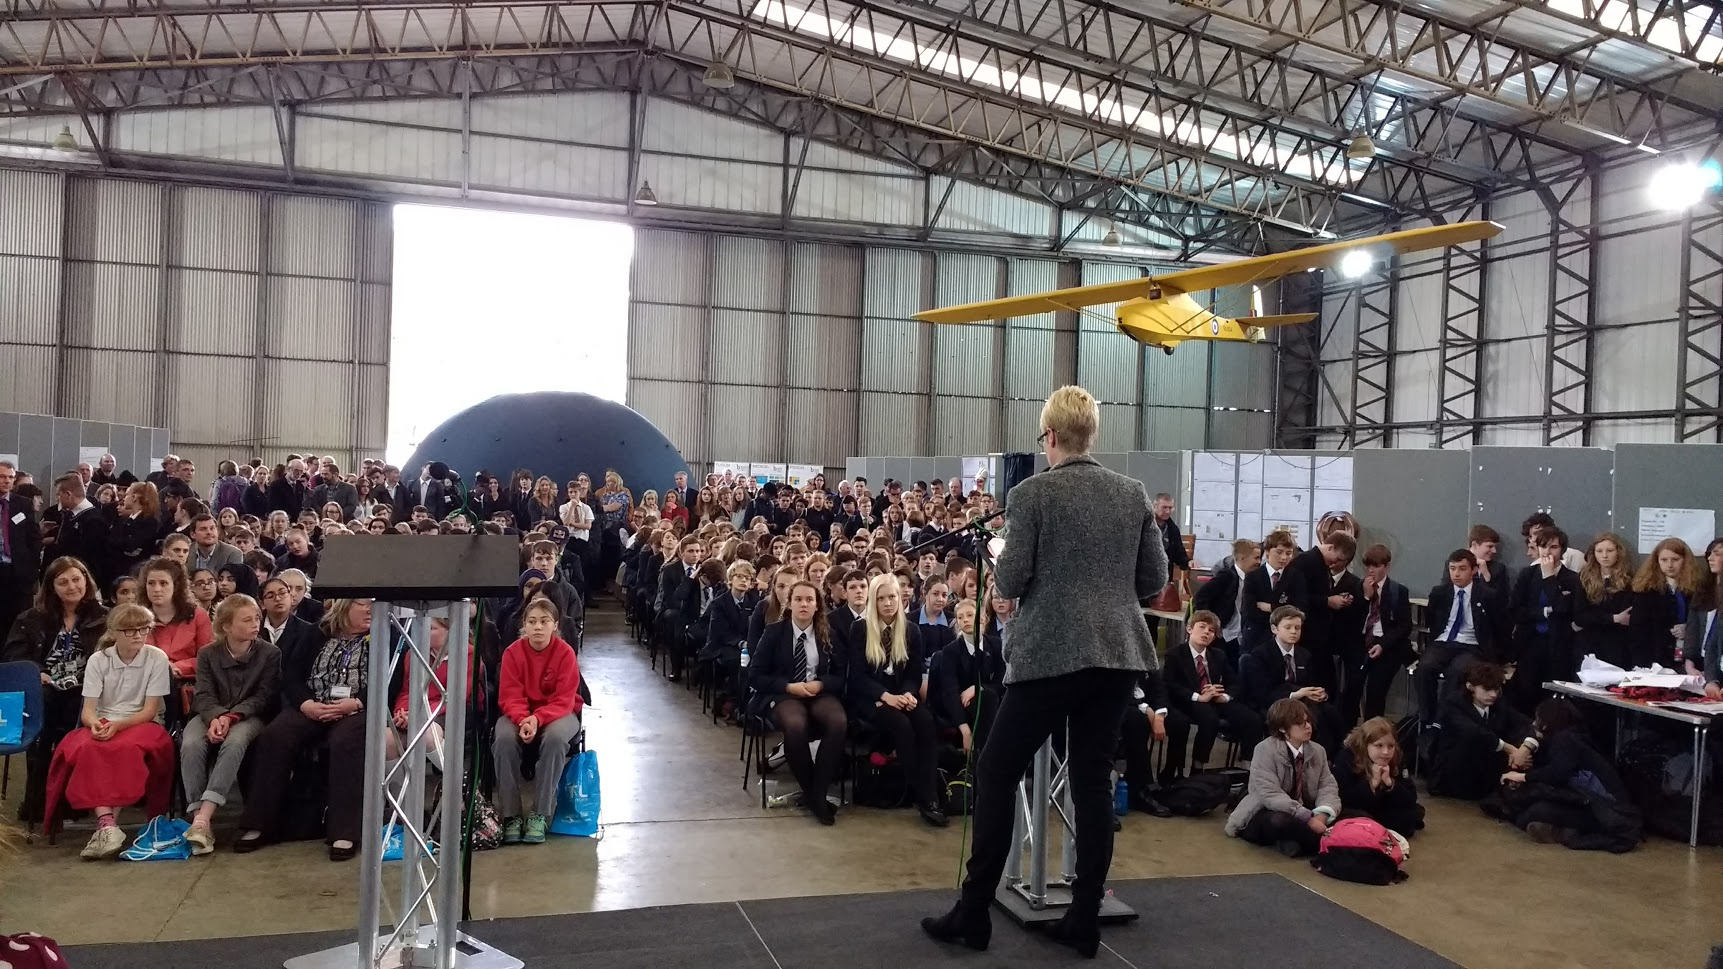 Inspirations 2017 in the T2 hangar at Elvington